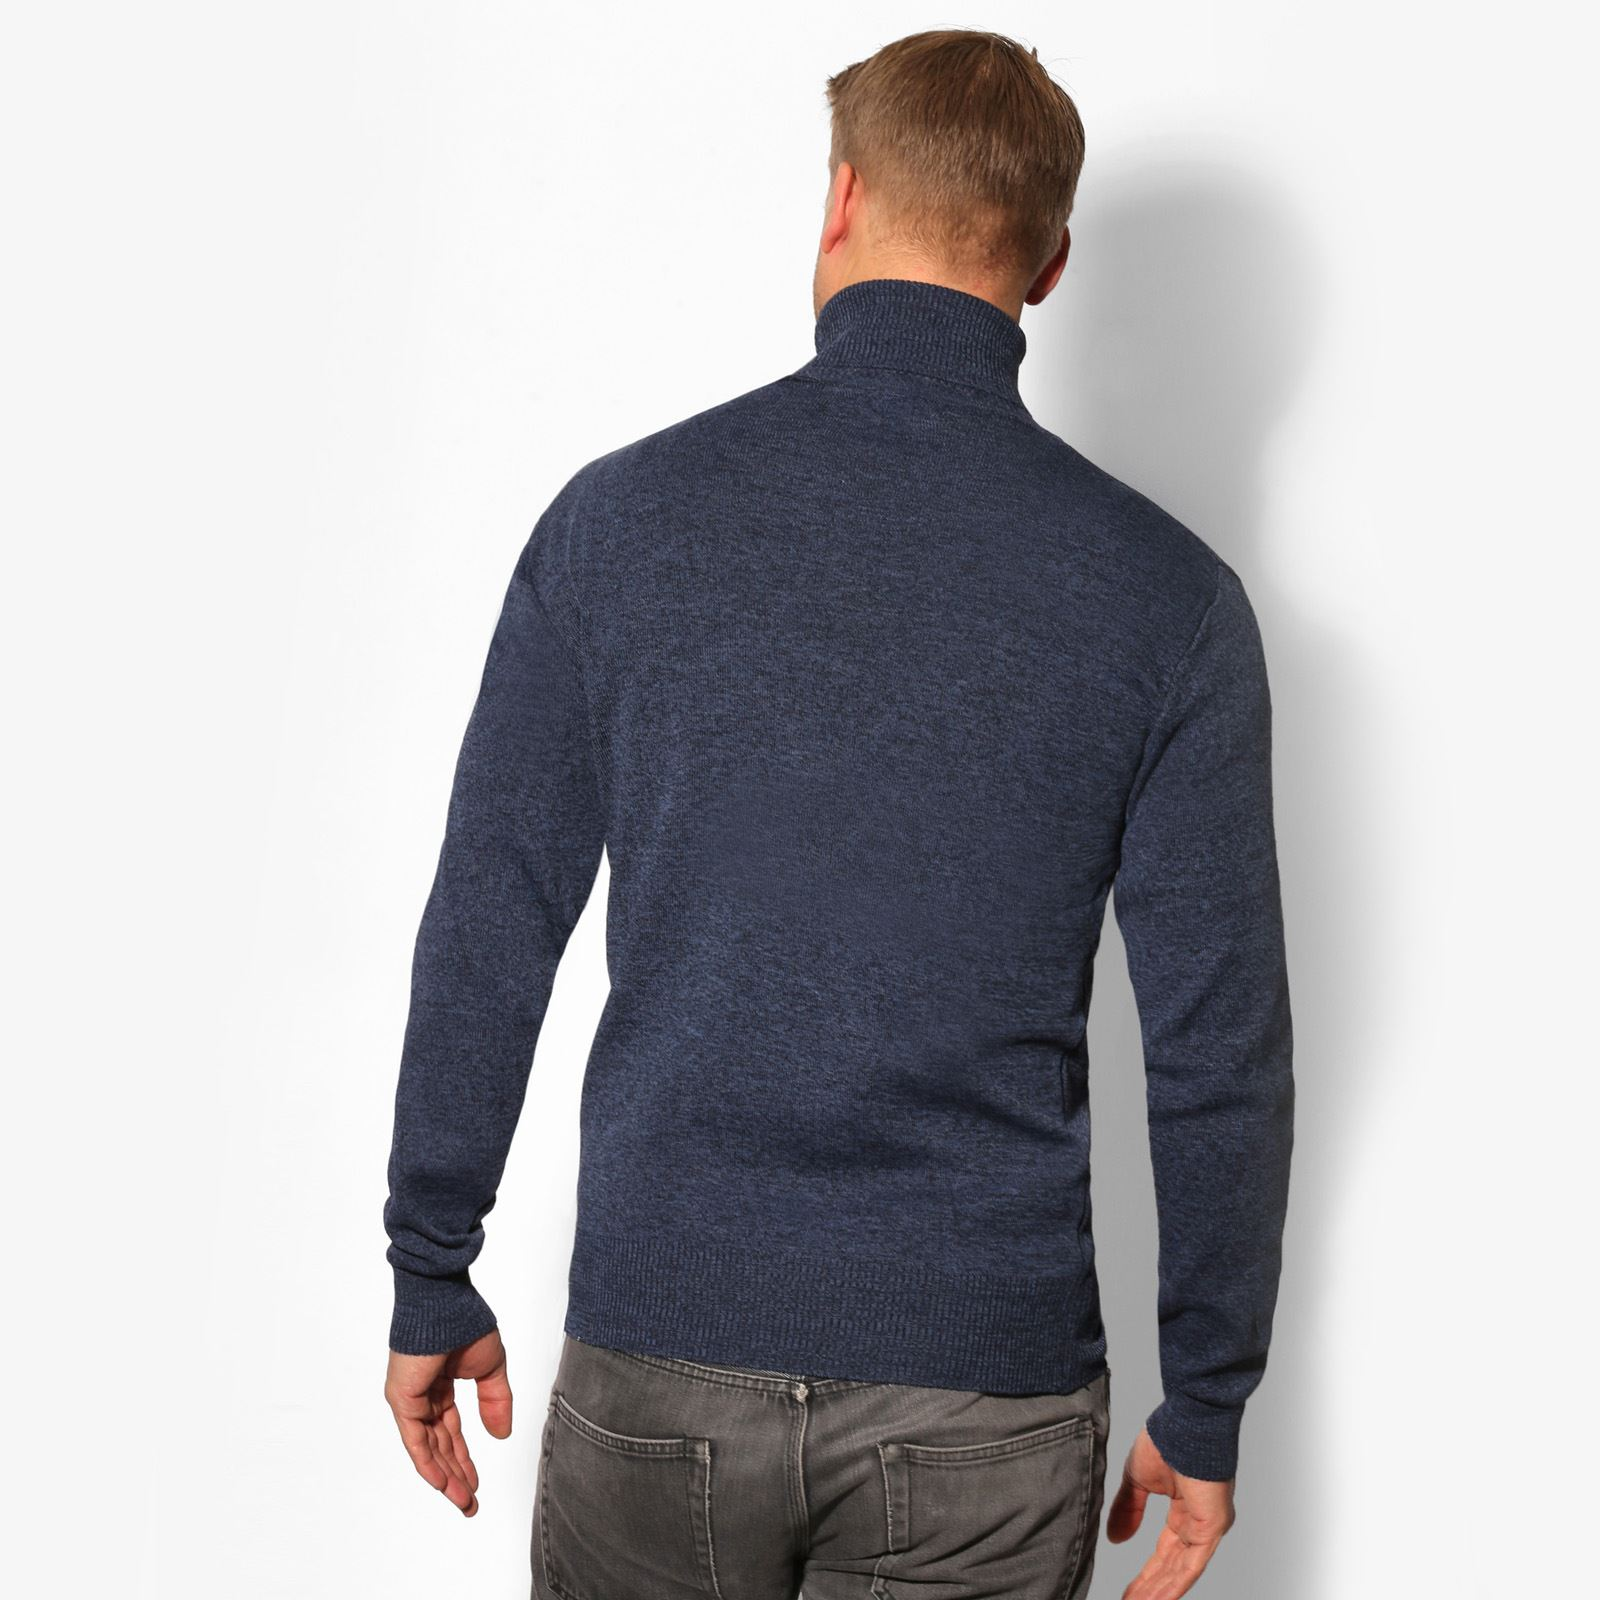 Mens-Turtle-Neck-Roll-Jumper-Sweater-Cotton-Knitwear-Winter-Pullover-Polo-Top thumbnail 5